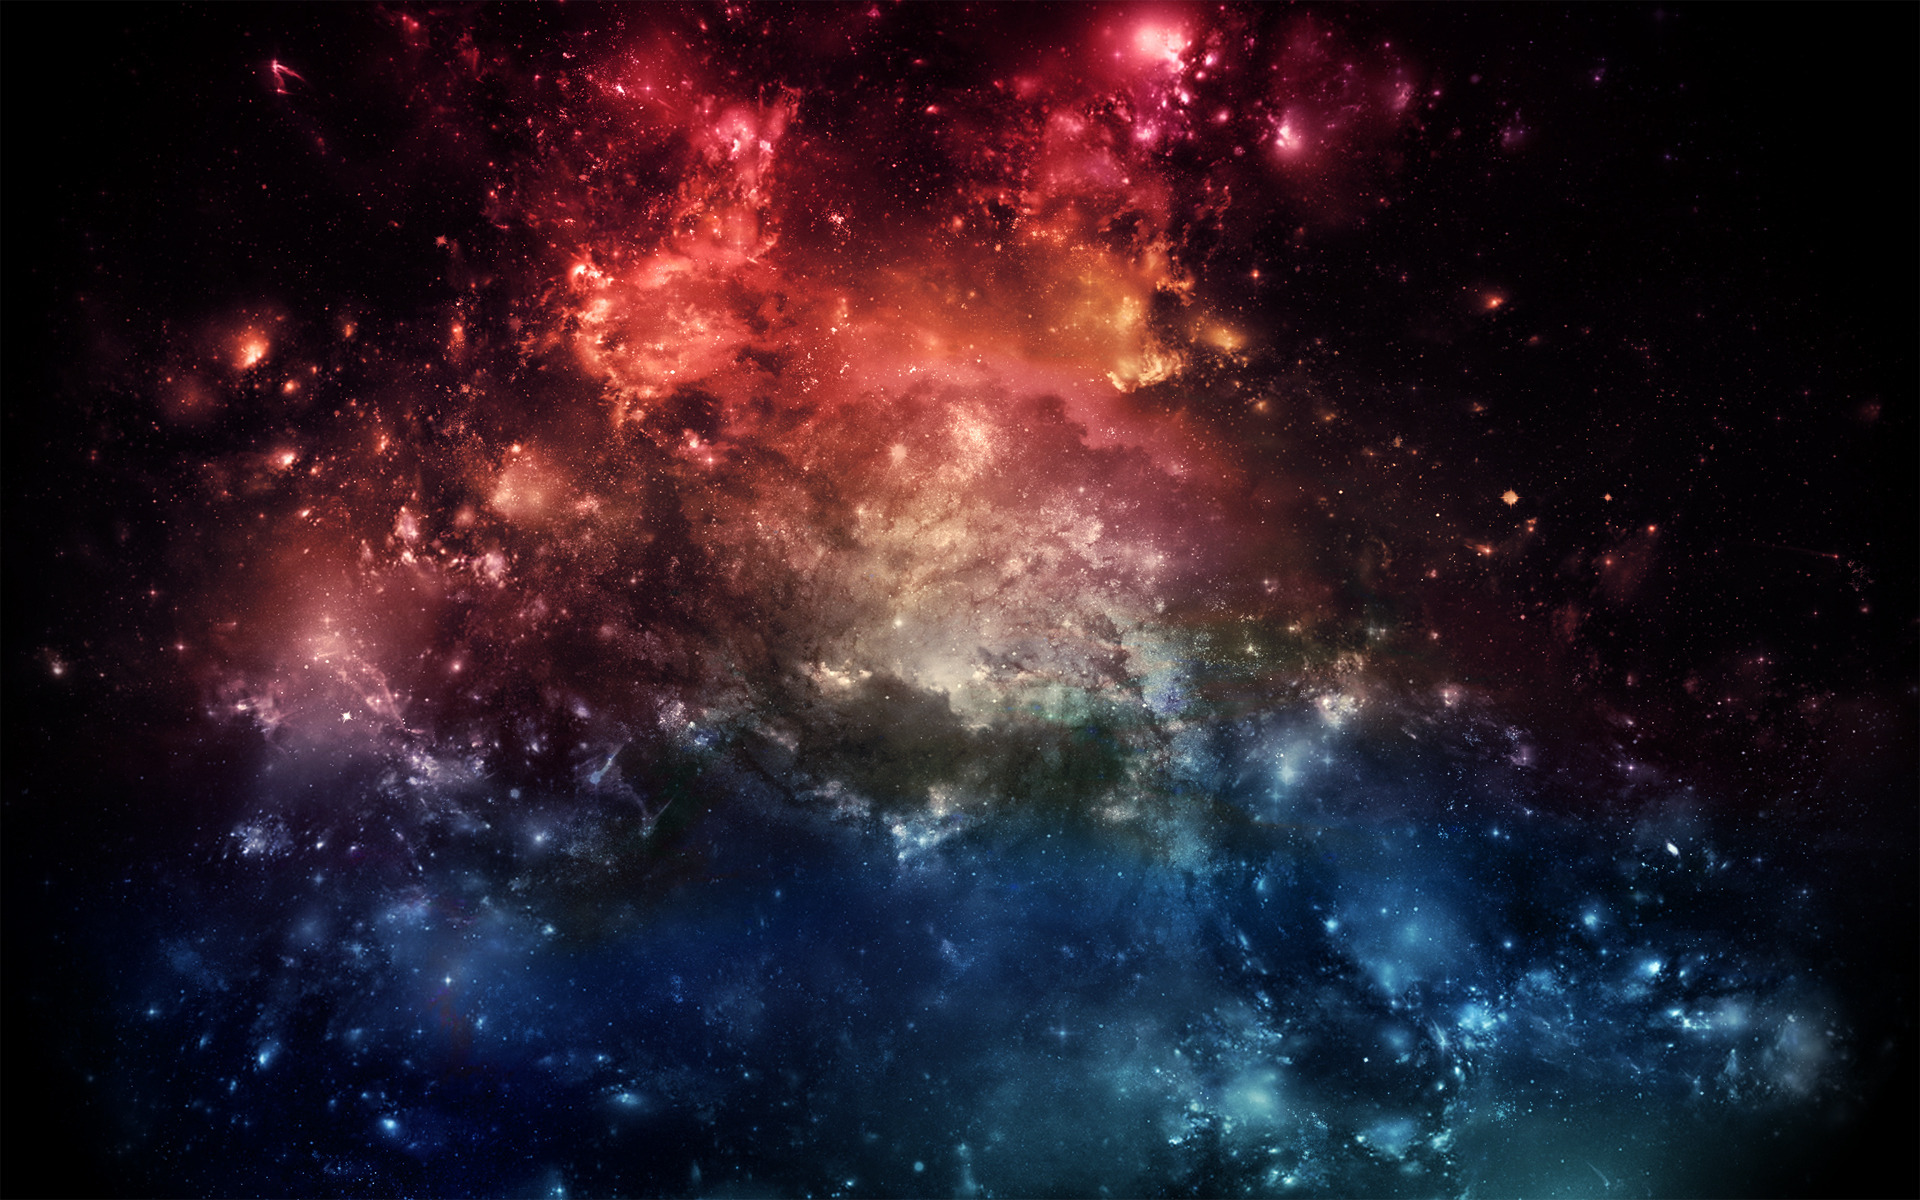 Galaxy wallpapers 1920 1200 for desktop